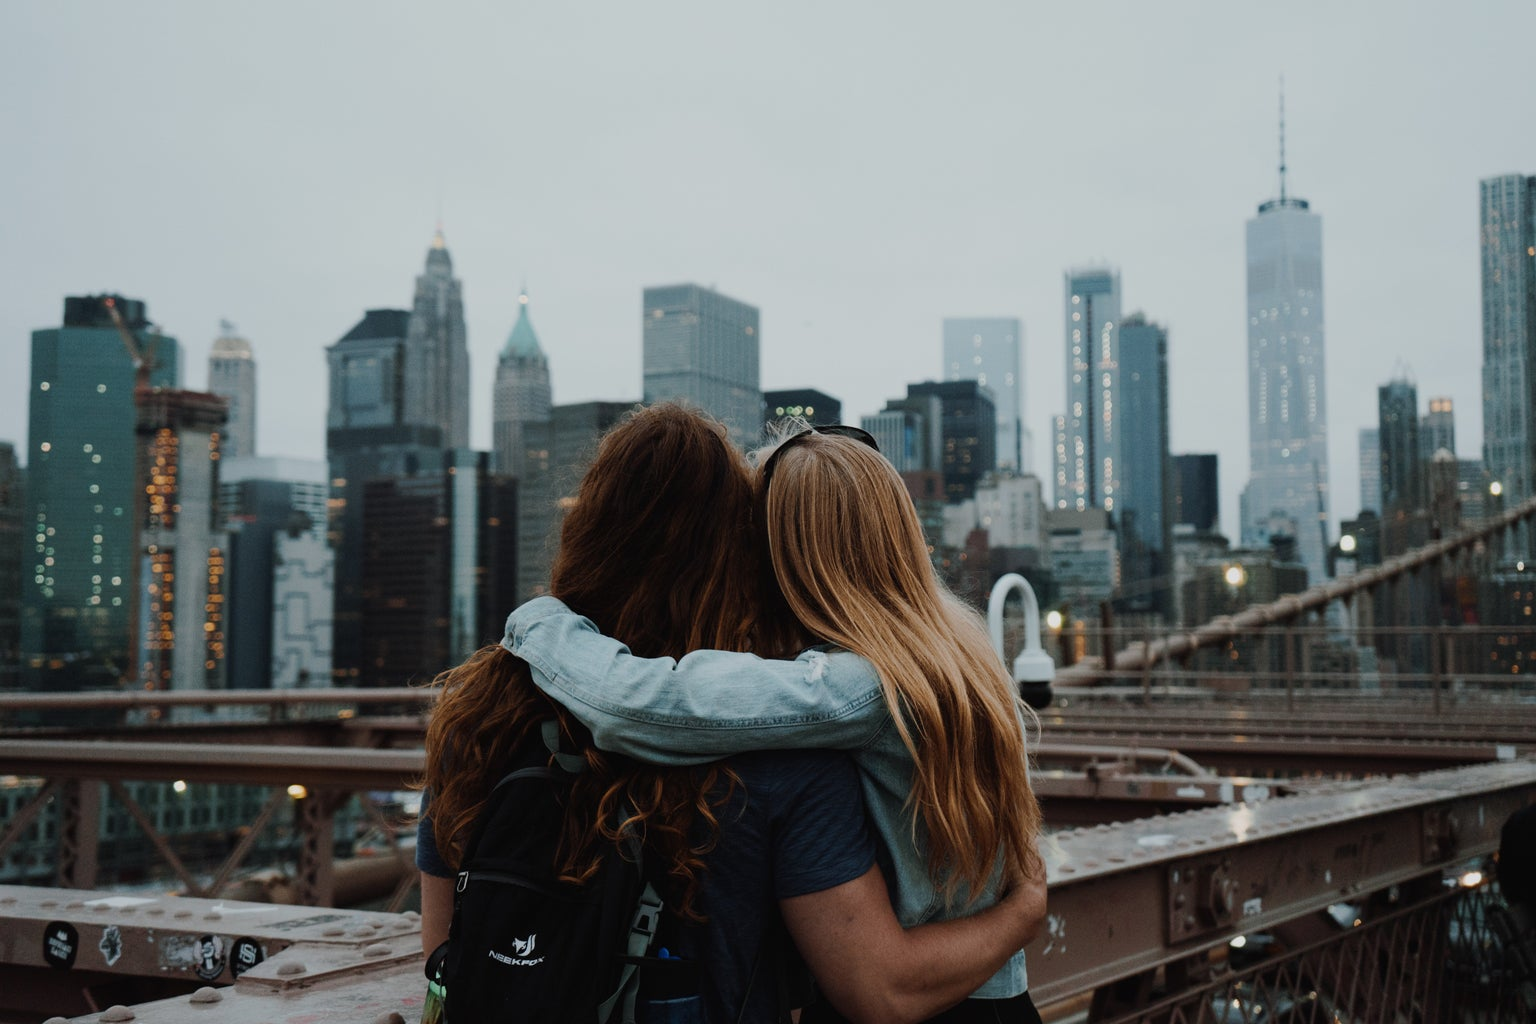 Two girls embracing from behind